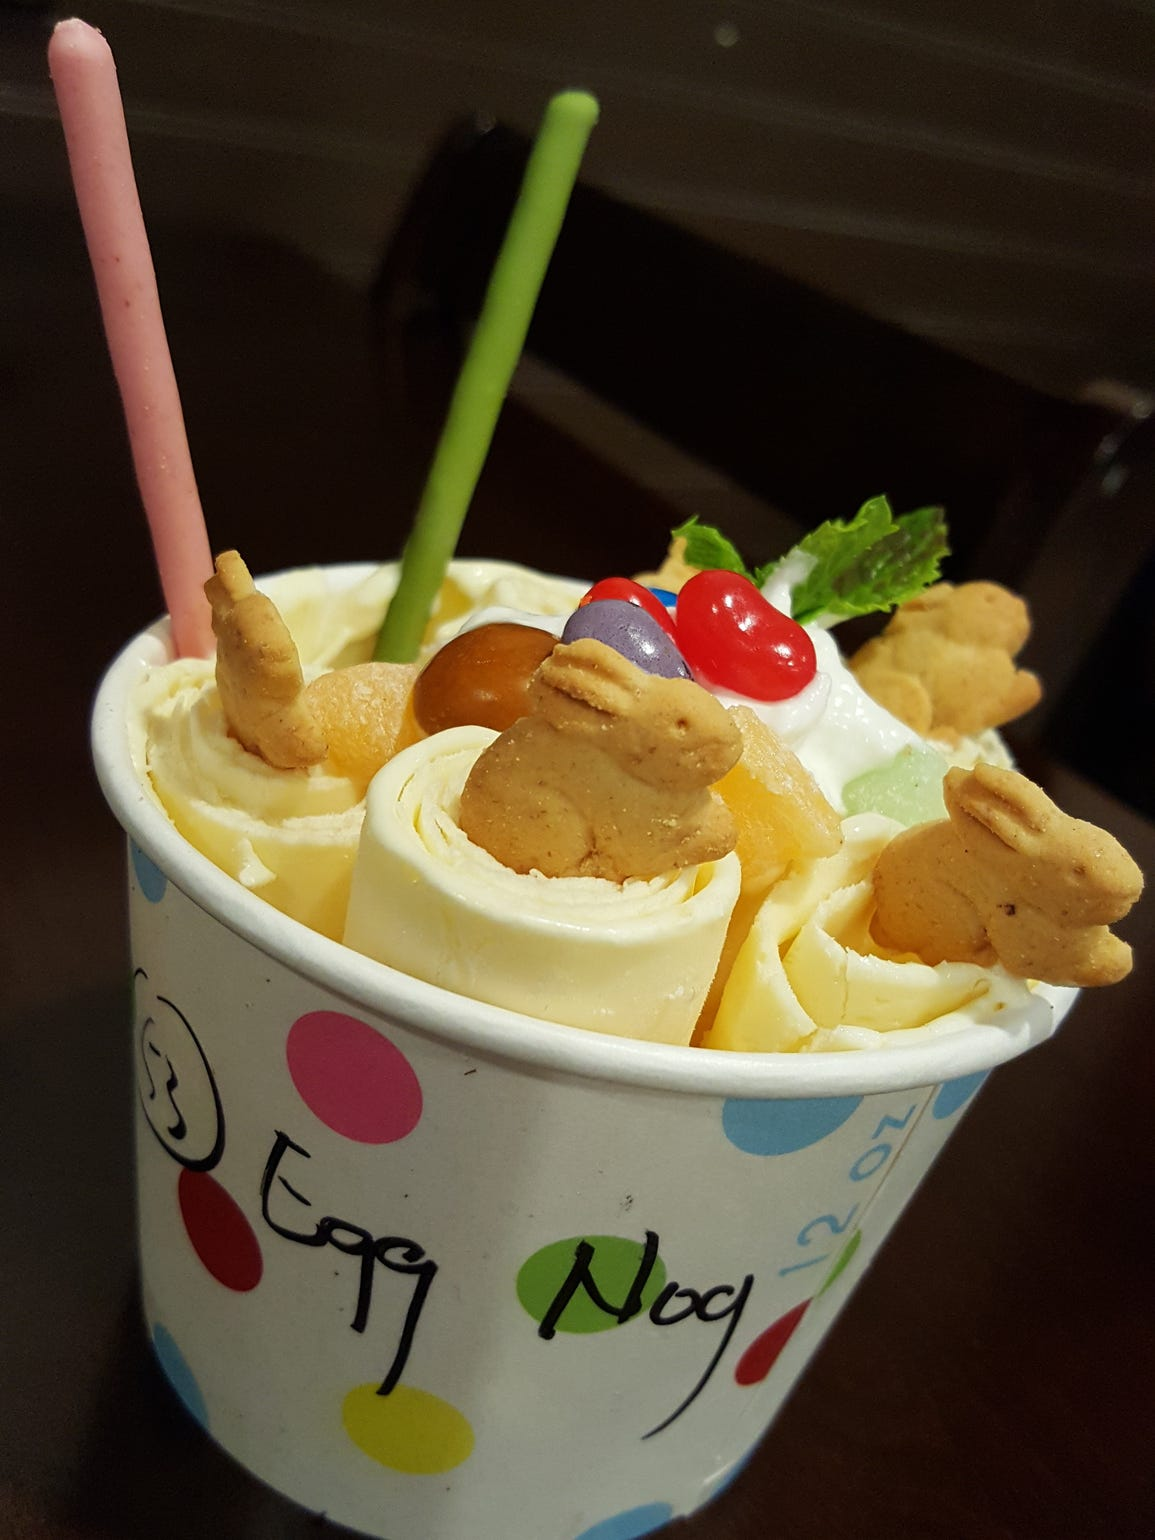 Eggnog-flavored rolling ice cream ($6.29) at Icy Summers